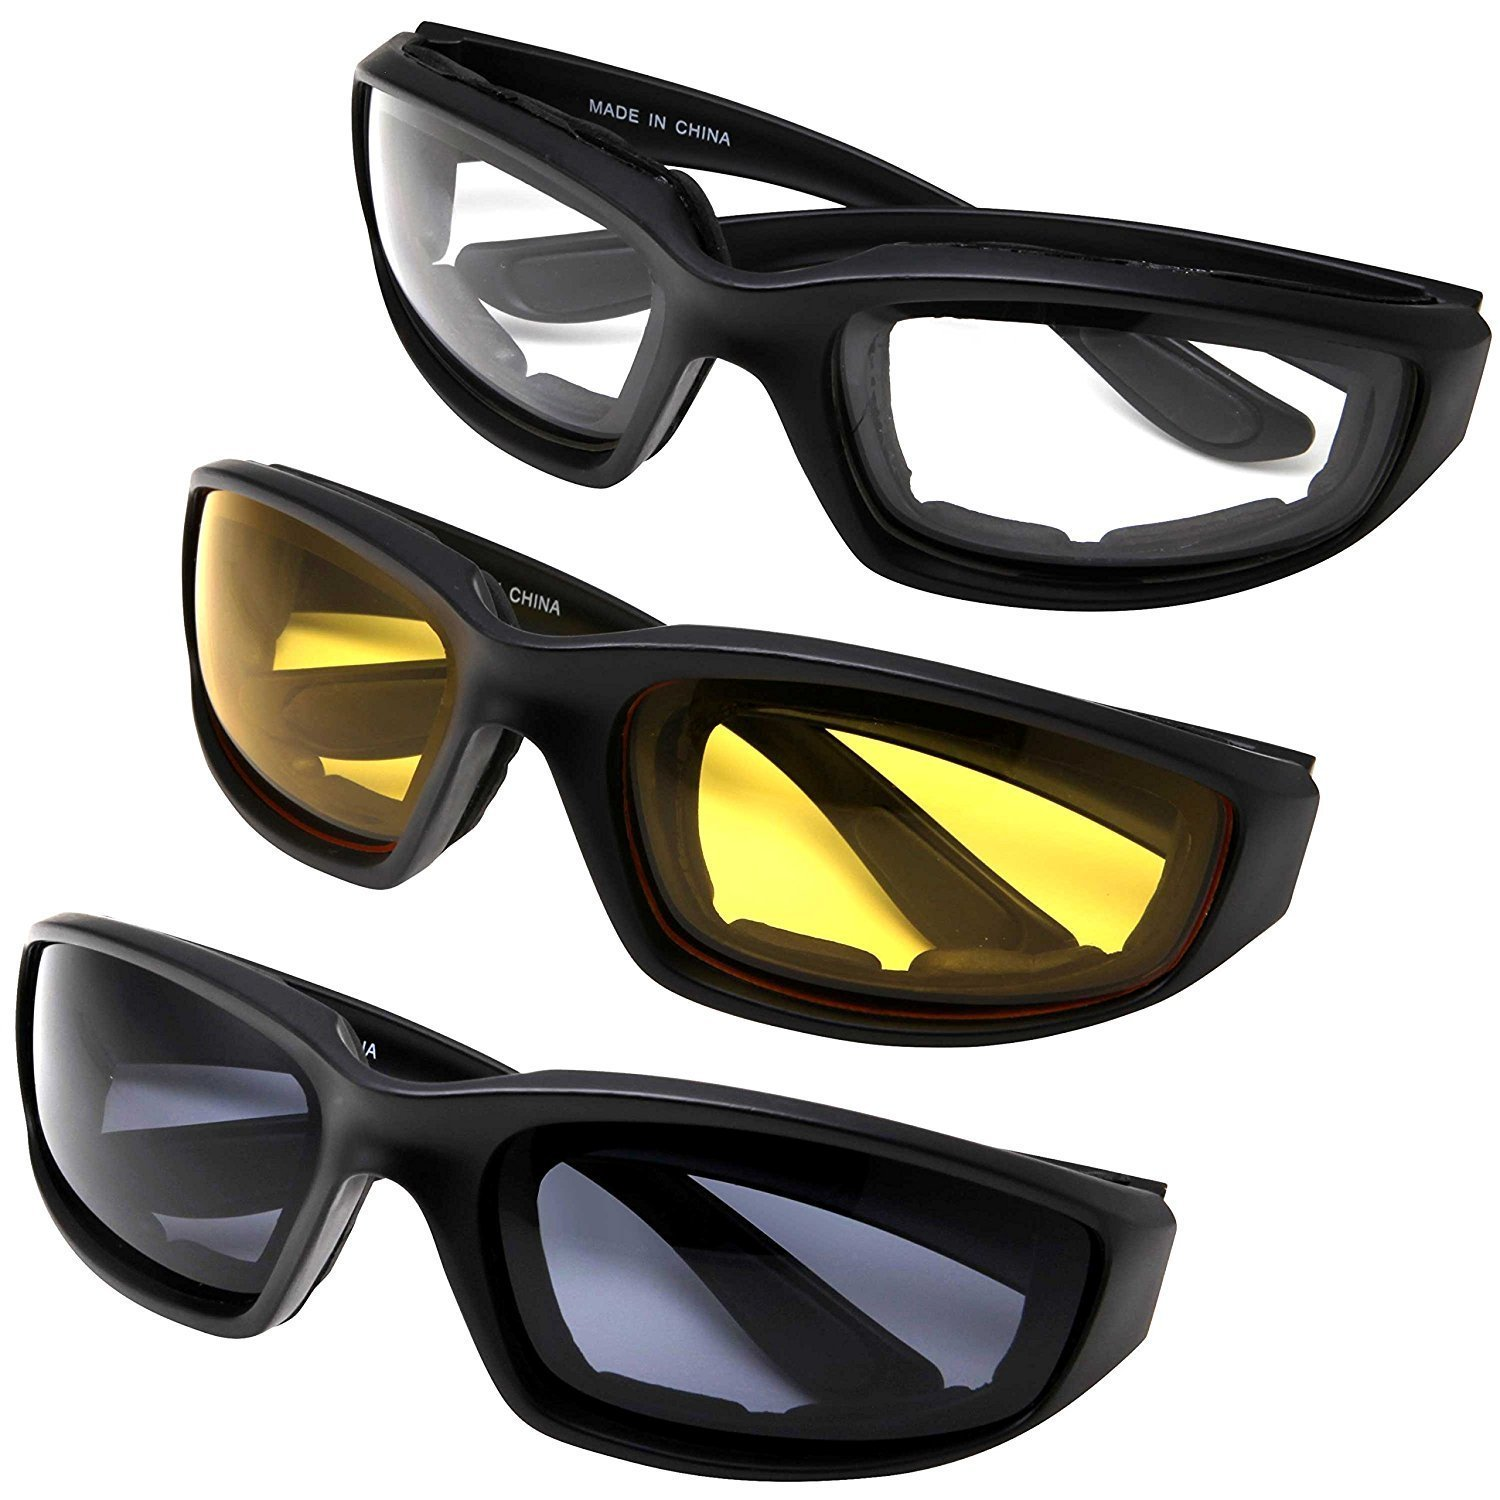 All Weather Protective Shatterproof Polycarbonate Motorcycle Riding Goggle Glasses 3 Pack Set (Polarized Assortment Pack)